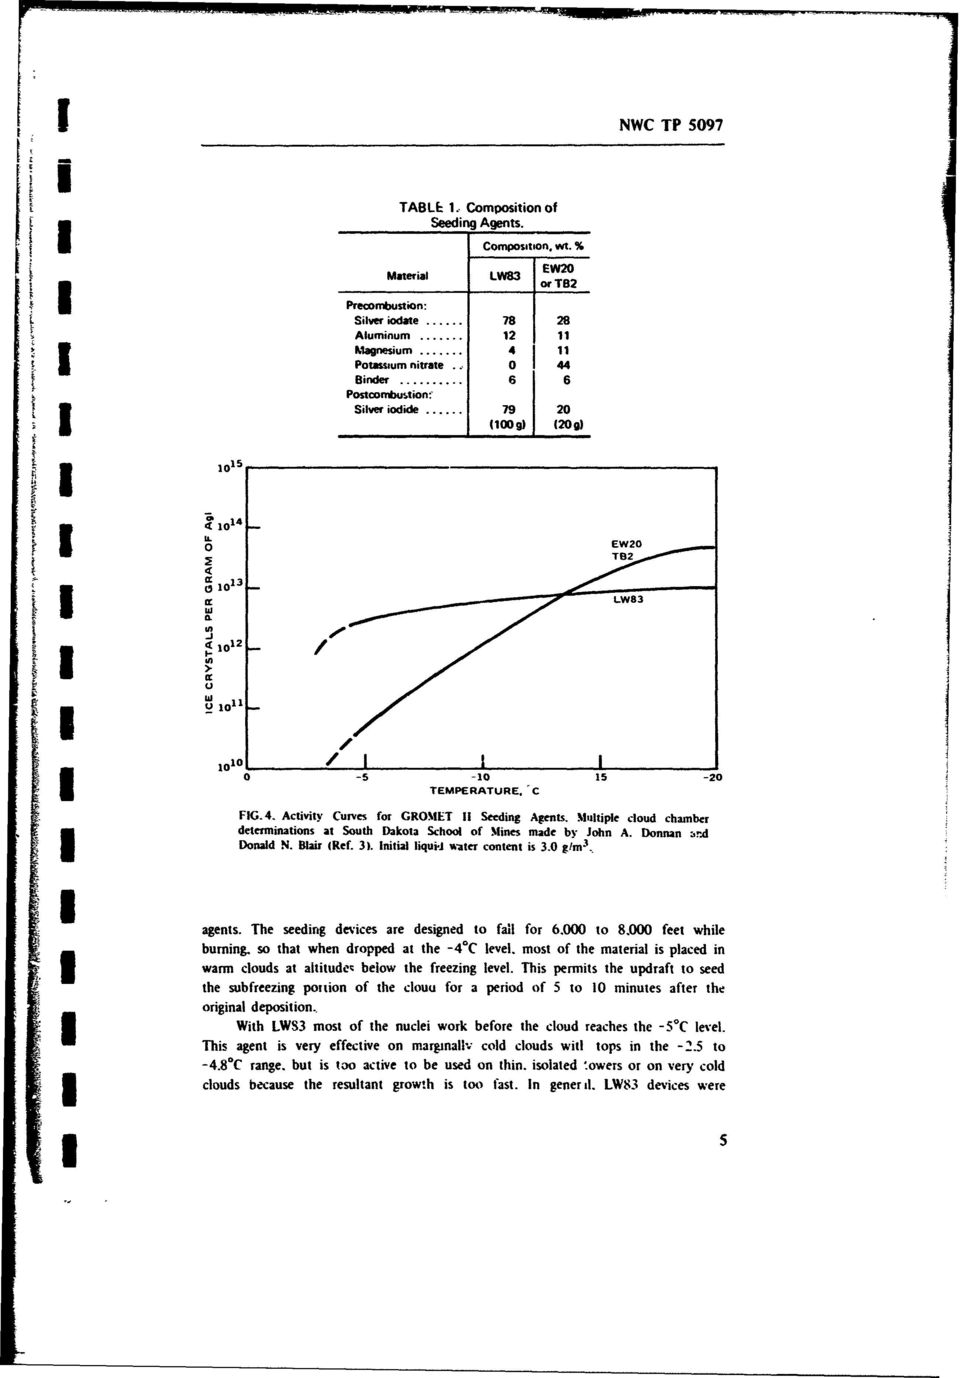 0 glm 3 _. FIG. 4. Activity Curves for GROMET 11 Seeding Agents. Multiple cloud chamber determinations at South Dakota School of Mines made by John A. Donnan 3!- agents.